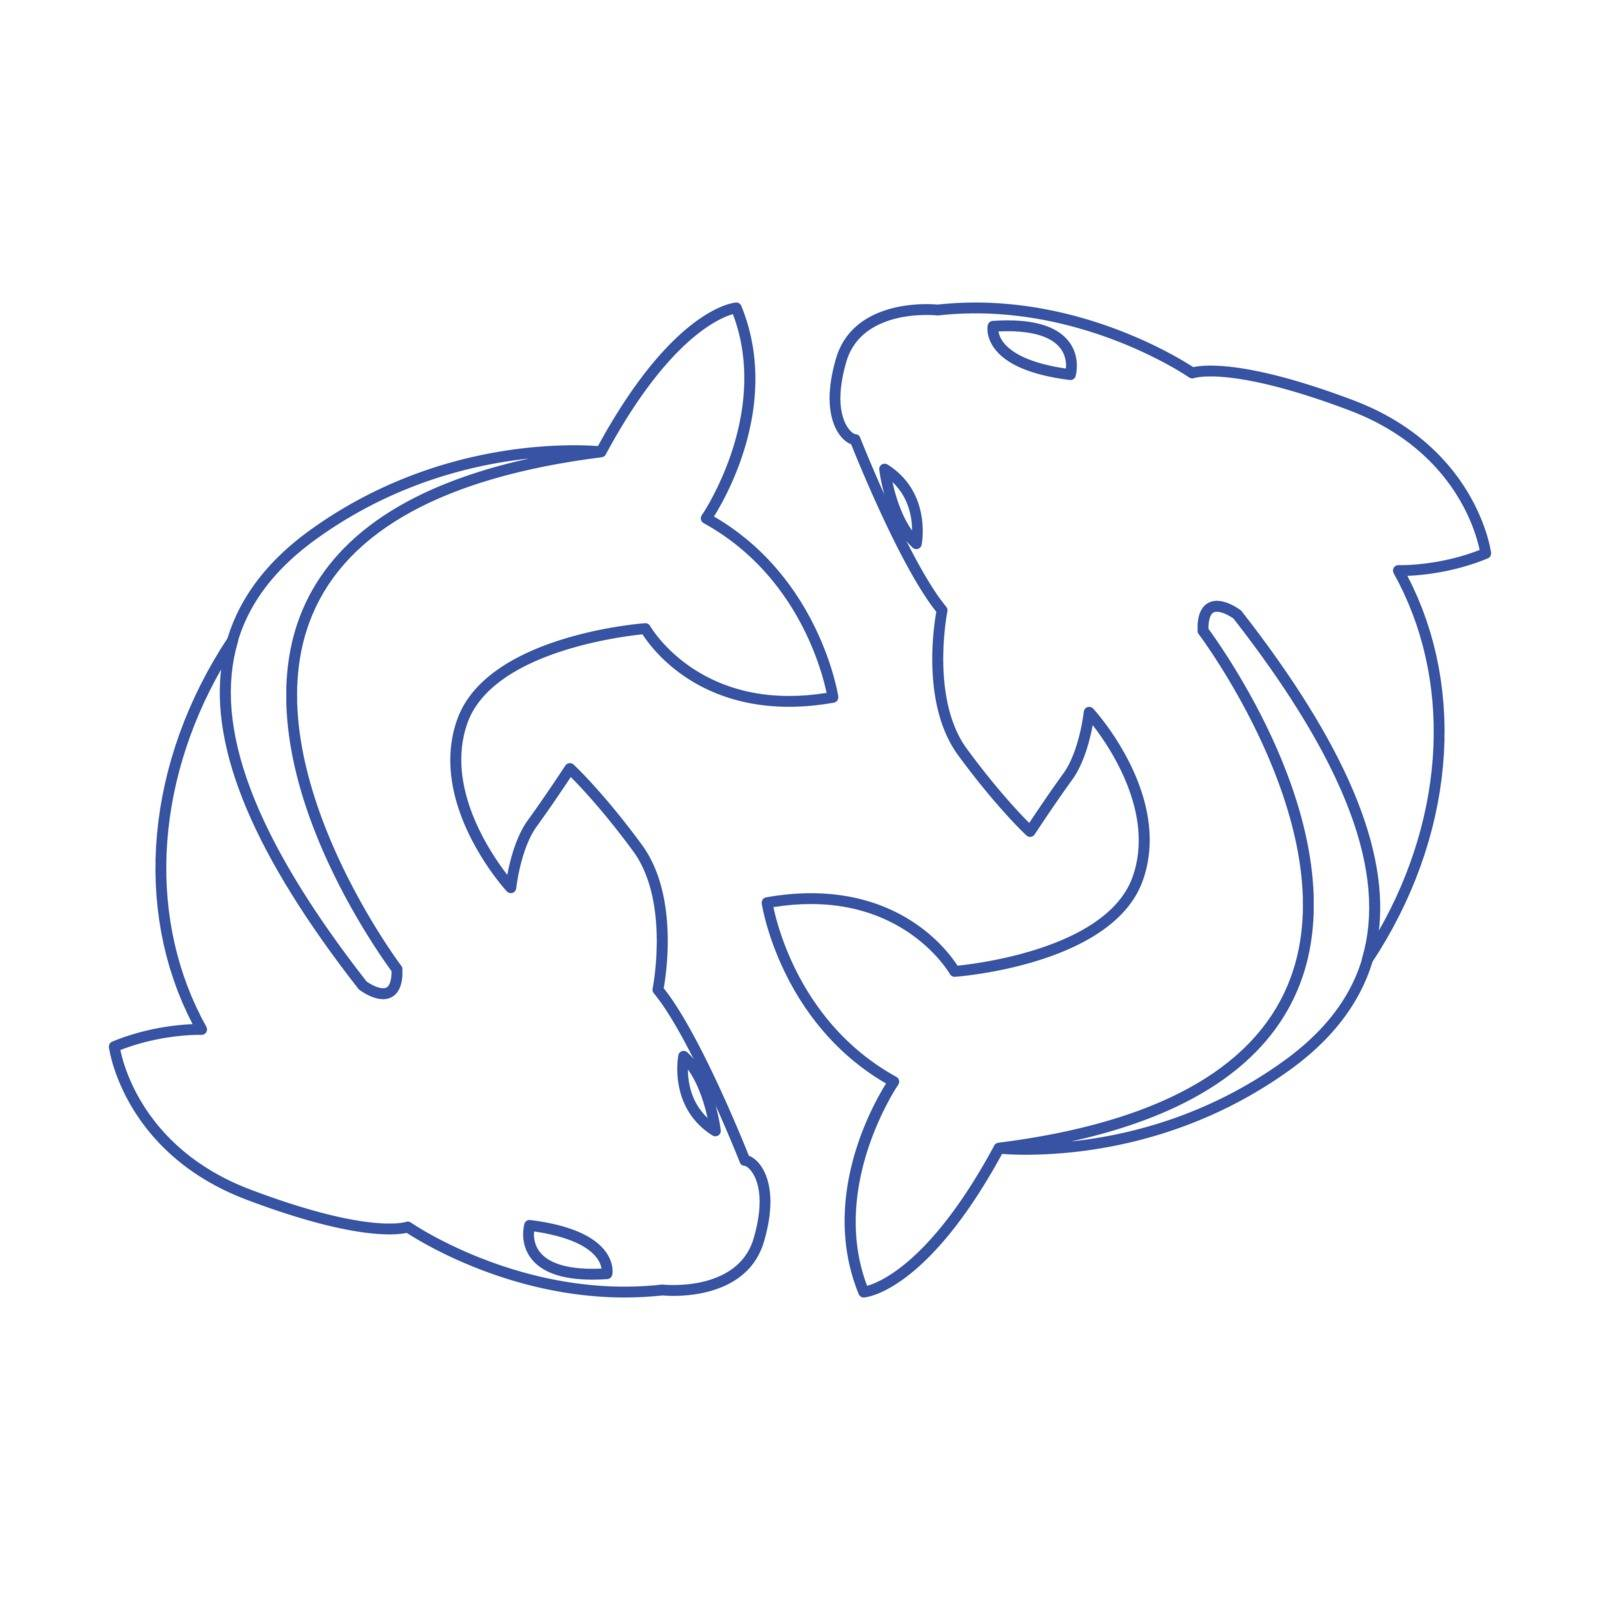 Thin line pisces icon by ang_bay